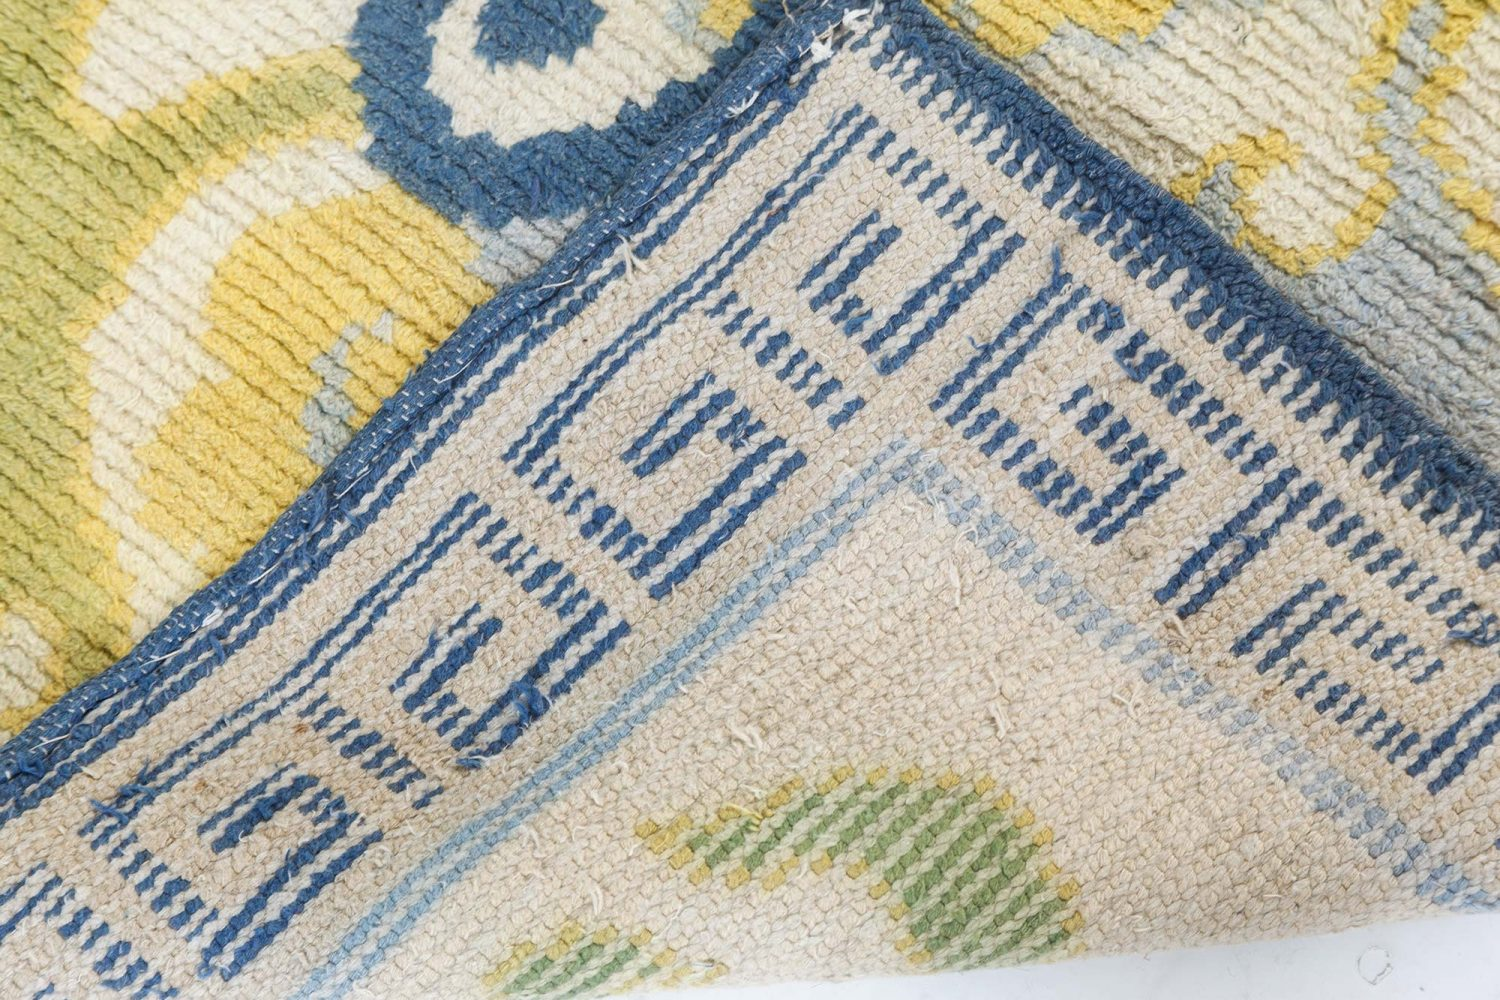 Vintage Japanese Ivory, Blue and Green Handwoven Wool Rug BB7431